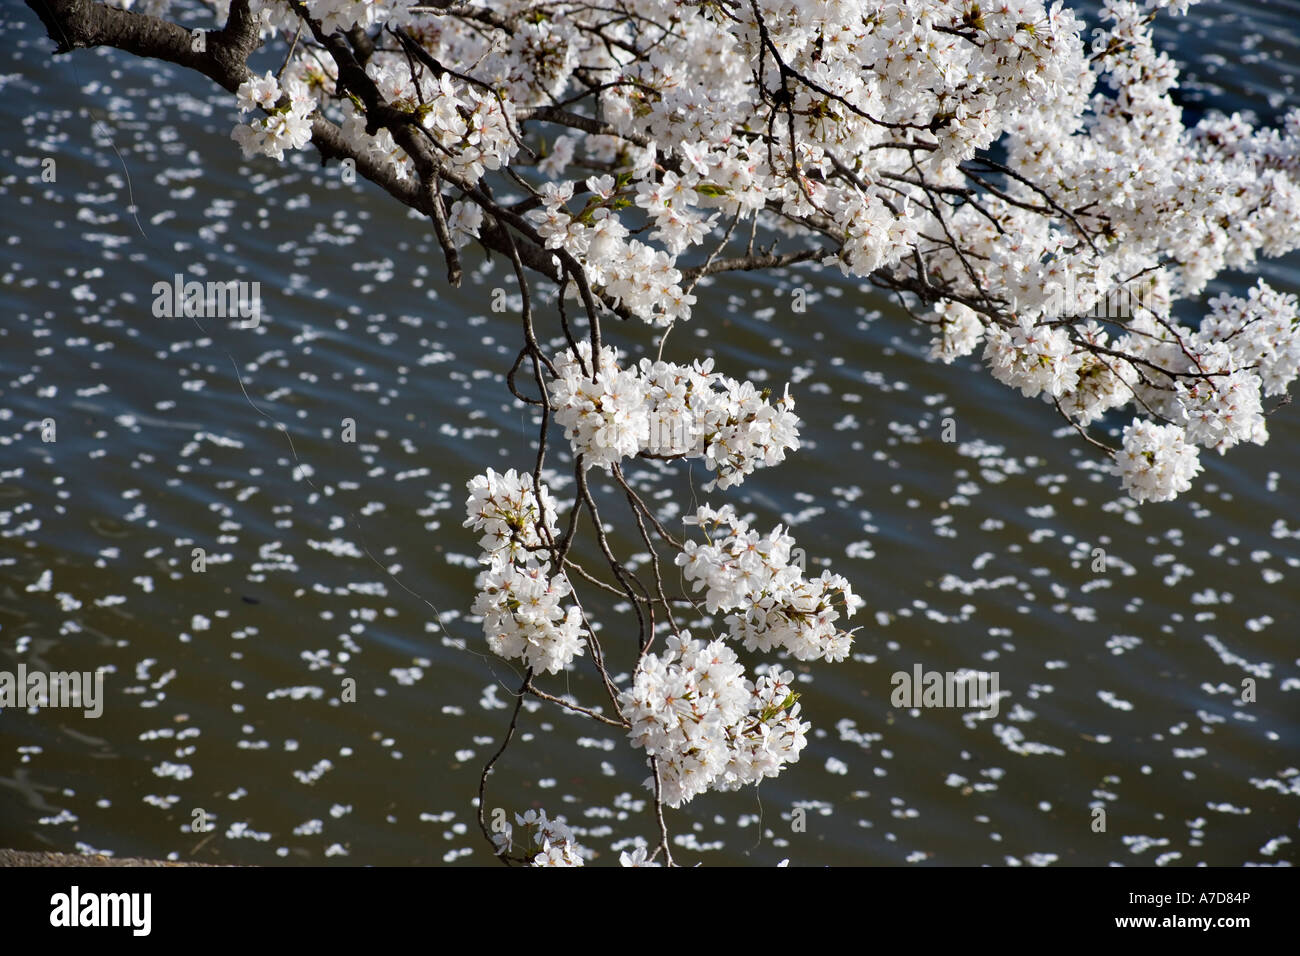 cherry blossom petals falling stockfotos cherry blossom petals falling bilder alamy. Black Bedroom Furniture Sets. Home Design Ideas